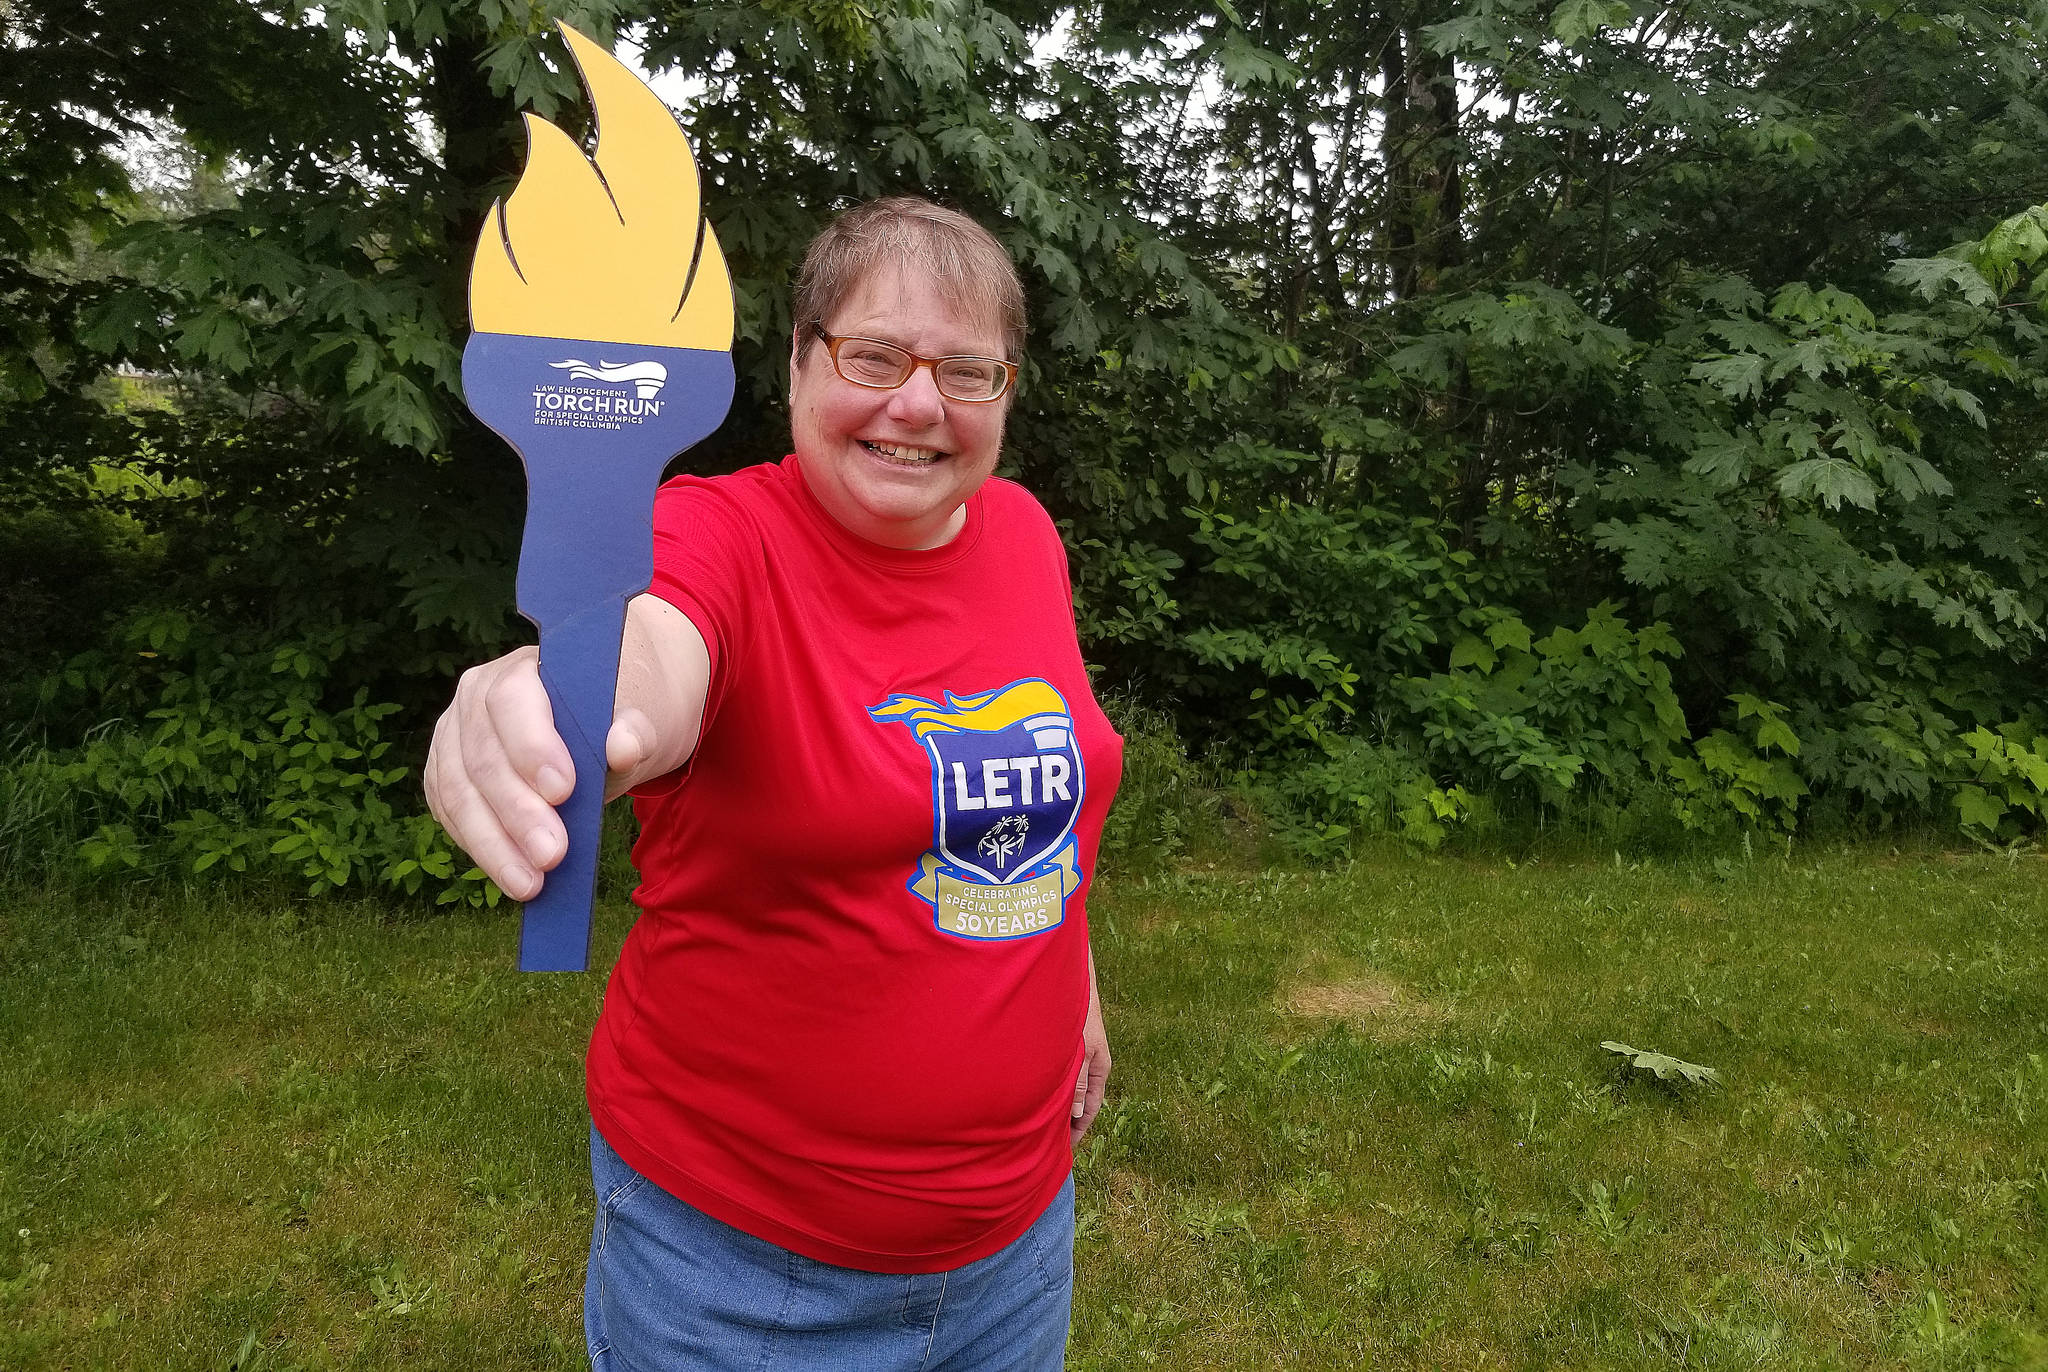 Betty Coleman is passing the torch virtually this year as the annual Law Enforcement Torch Run raises funds for Special Olympians. (Eric J. Welsh/ The Progress)